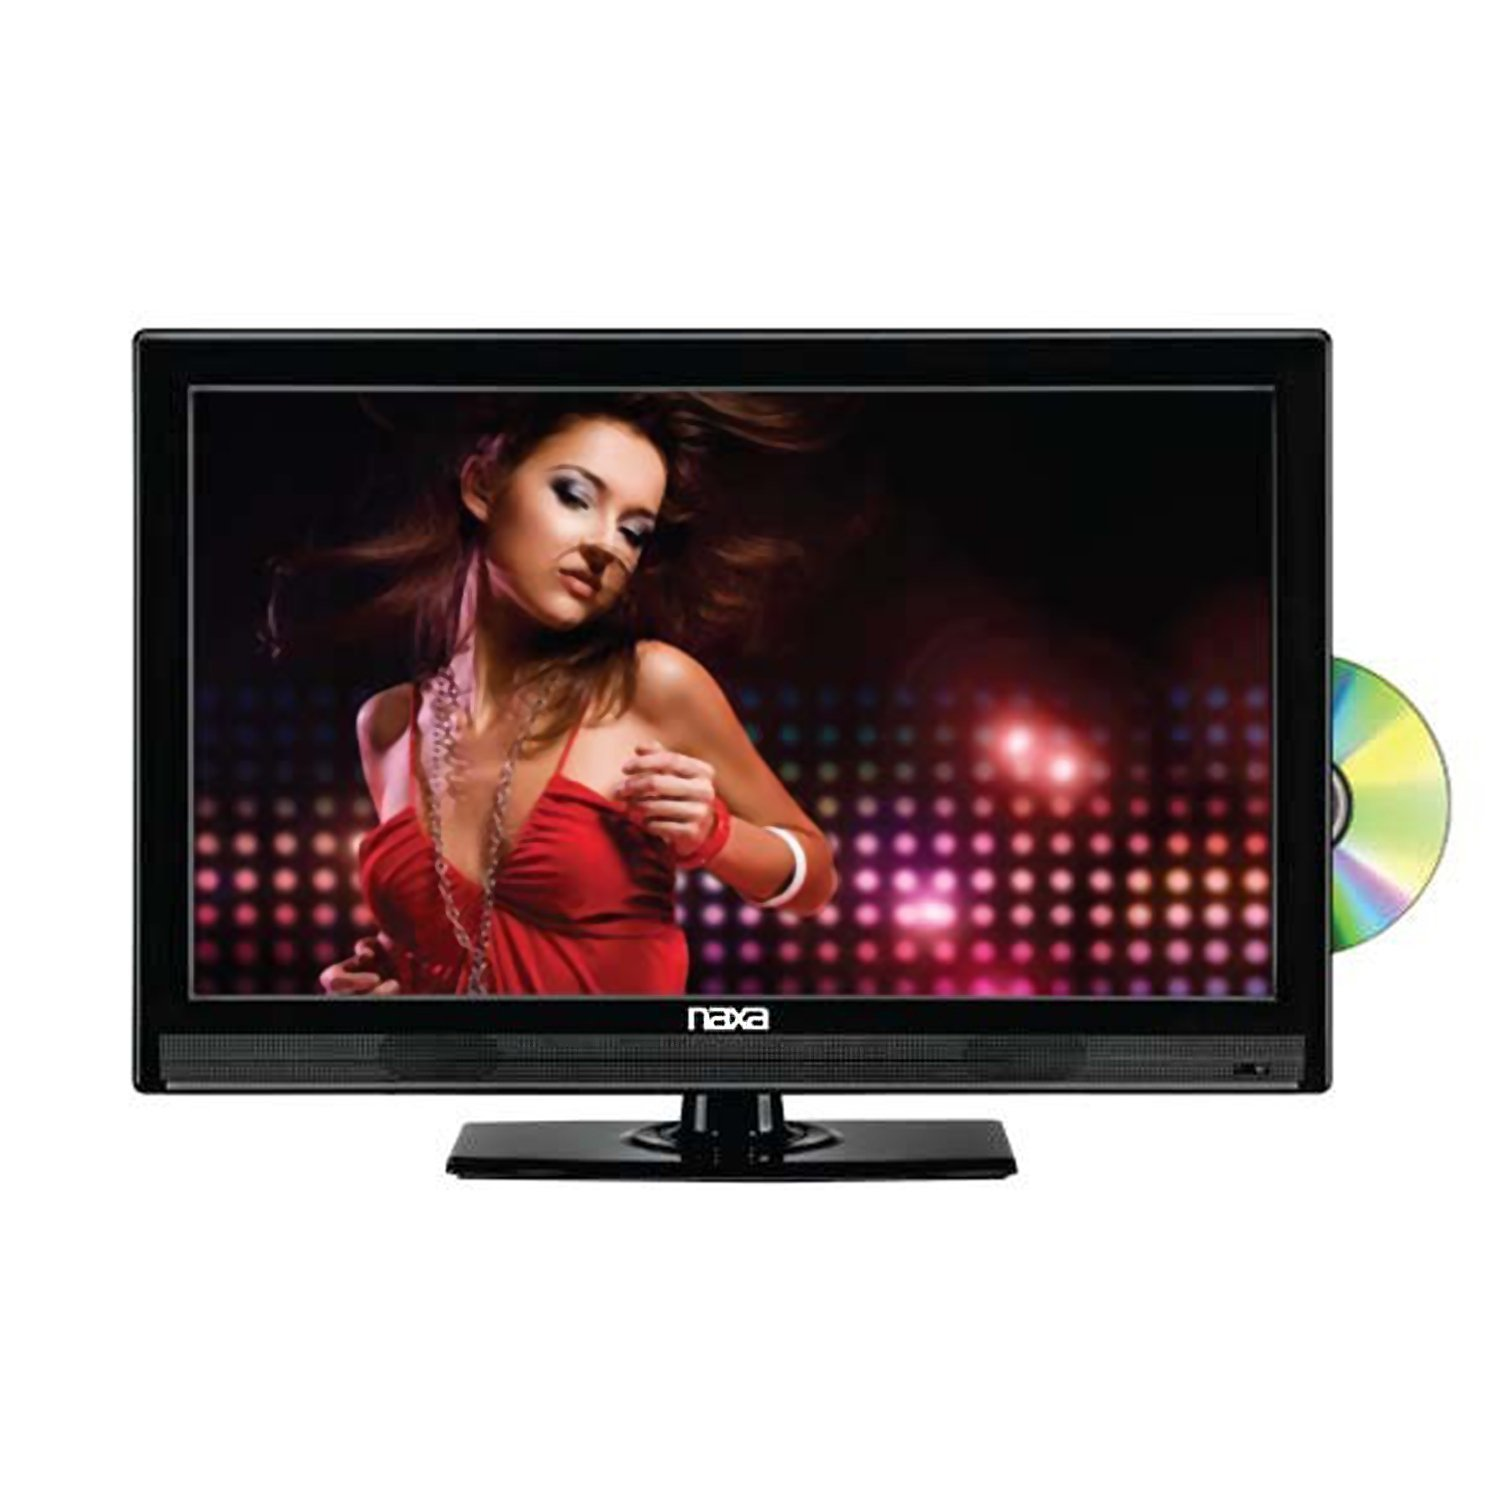 "Naxa NTD-2252 22"" Widescreen Full 1080P HD LED Television with Built-In Digital TV Tuner & USB/SD Inputs & DVD Player"